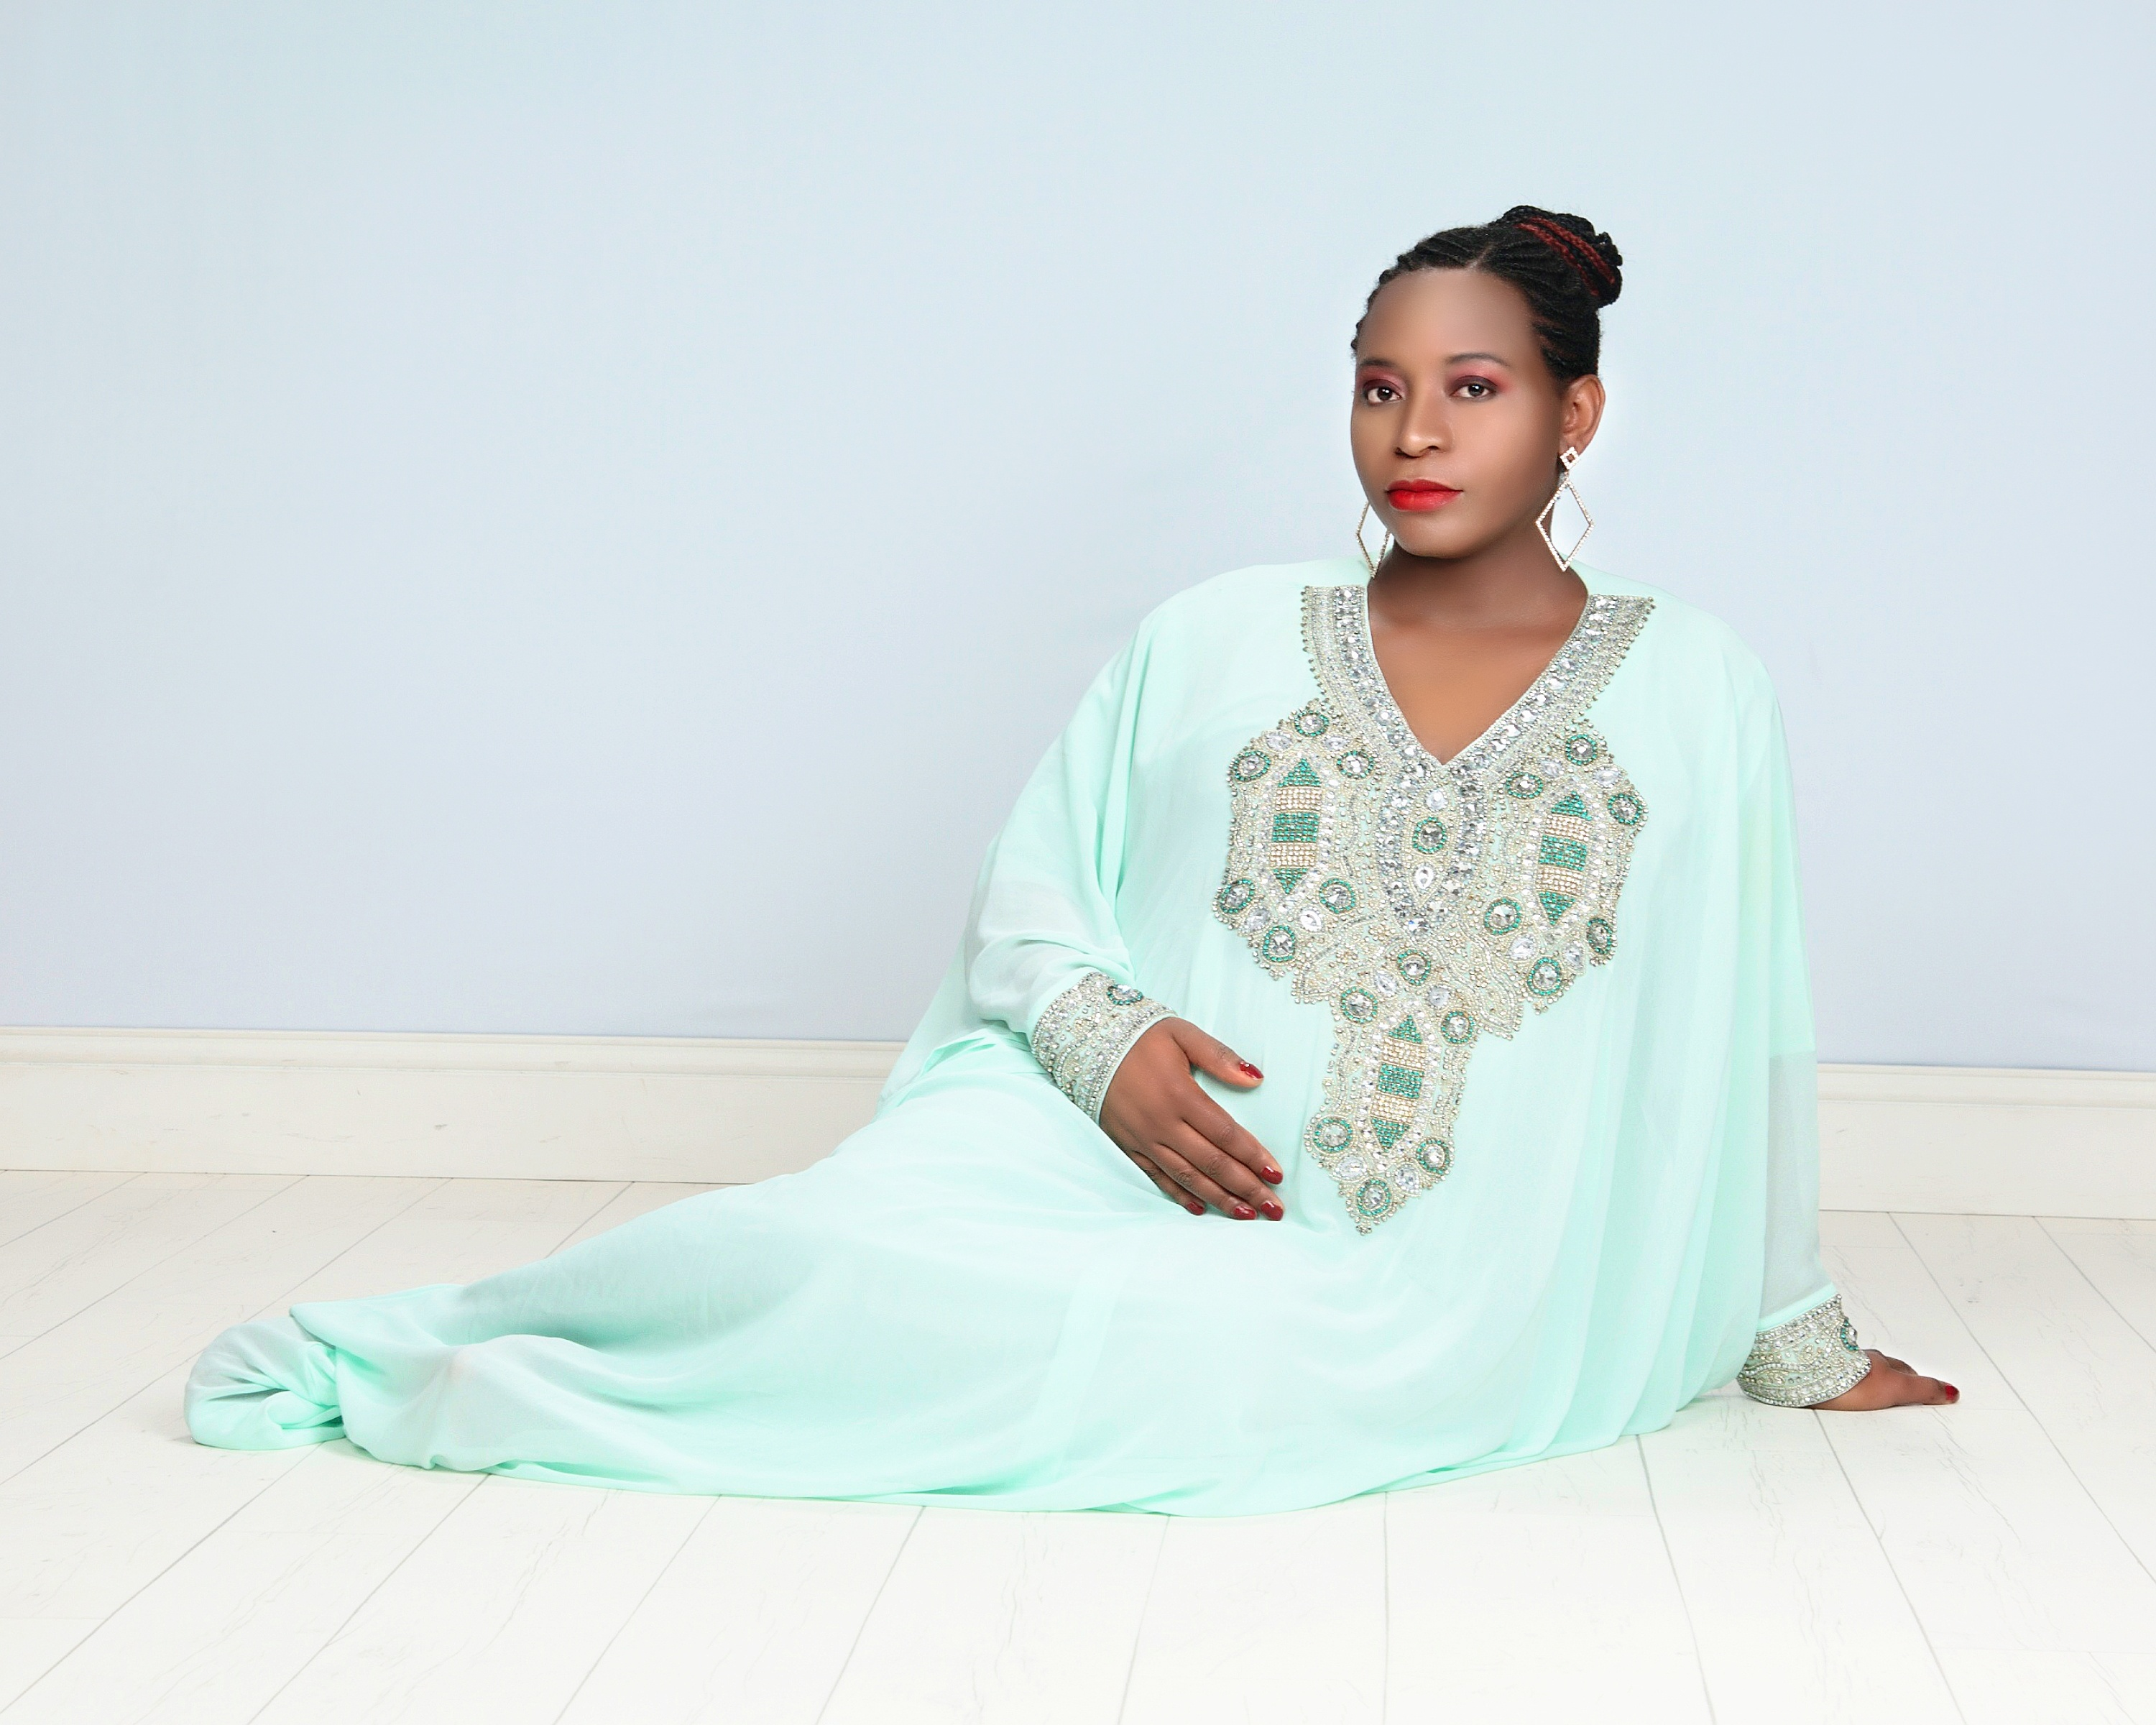 Myra Maimoh Glows In Stunning New Maternity Pictures